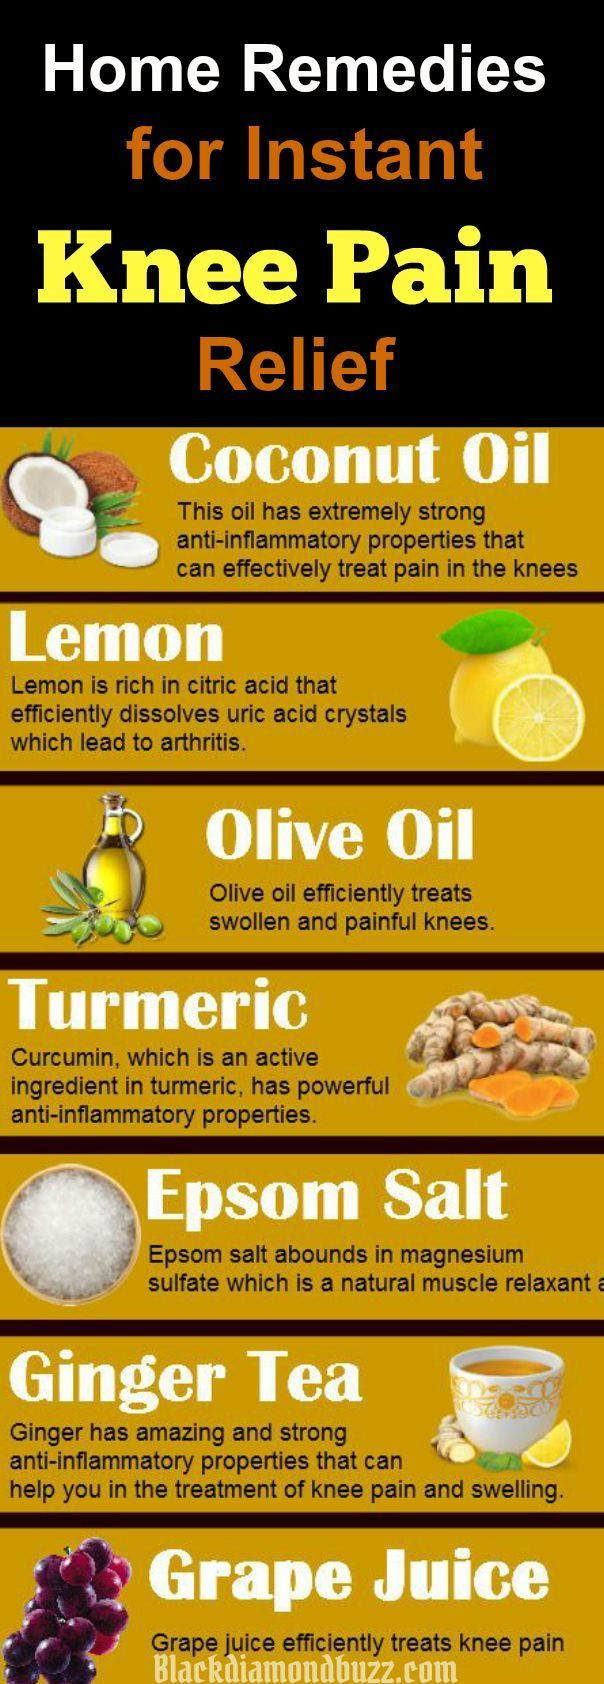 Home Remedies for knee Pain Relief - These home remedies are powerful to treat your knee joint pain and arthritis in the knee